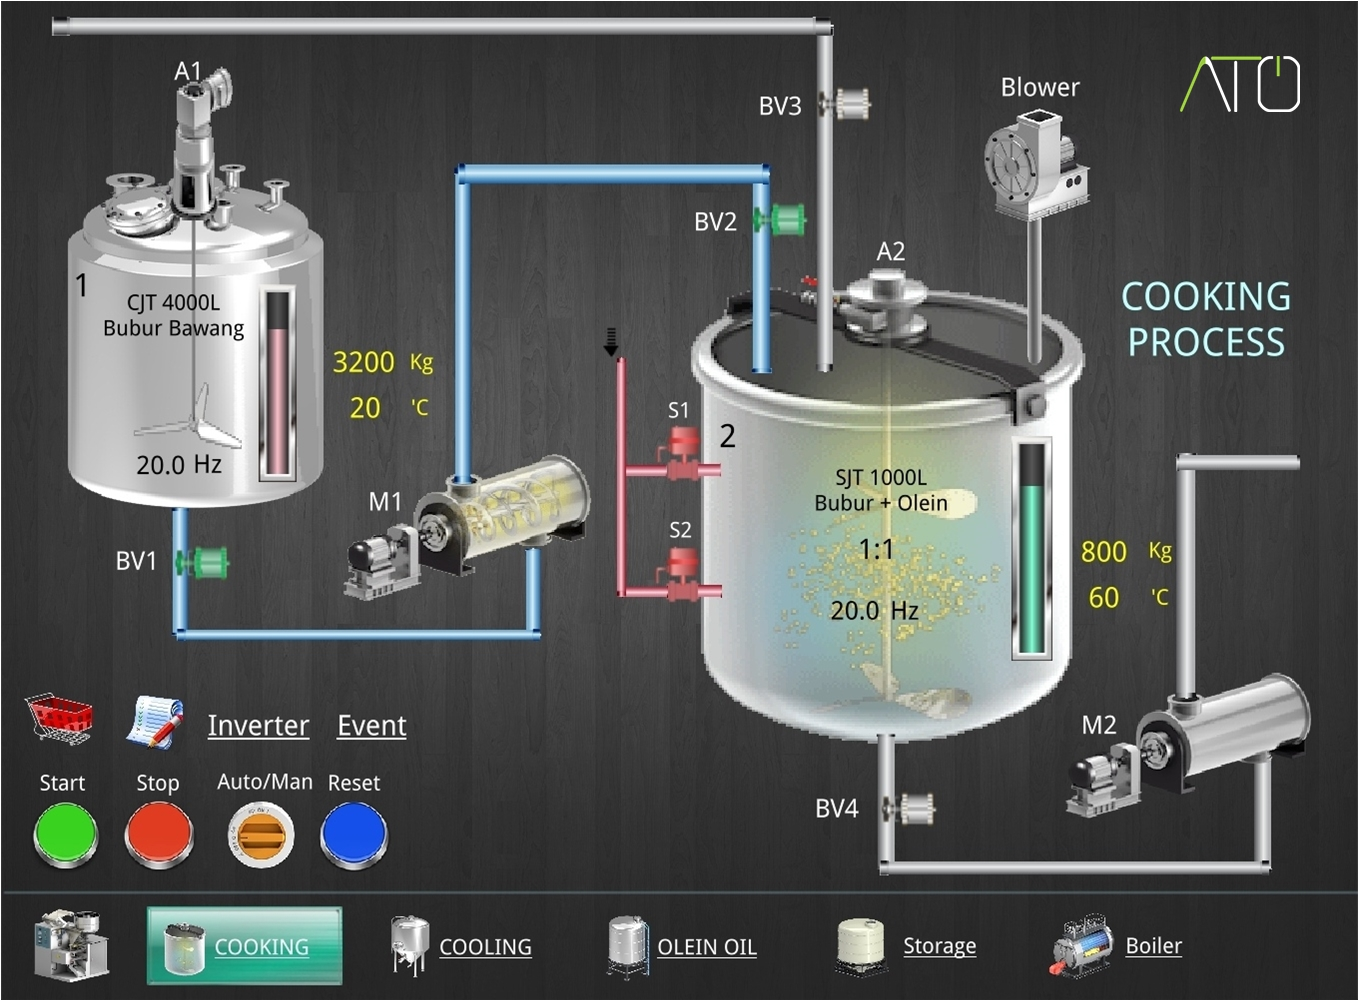 HMI - Project Cooking Process 1